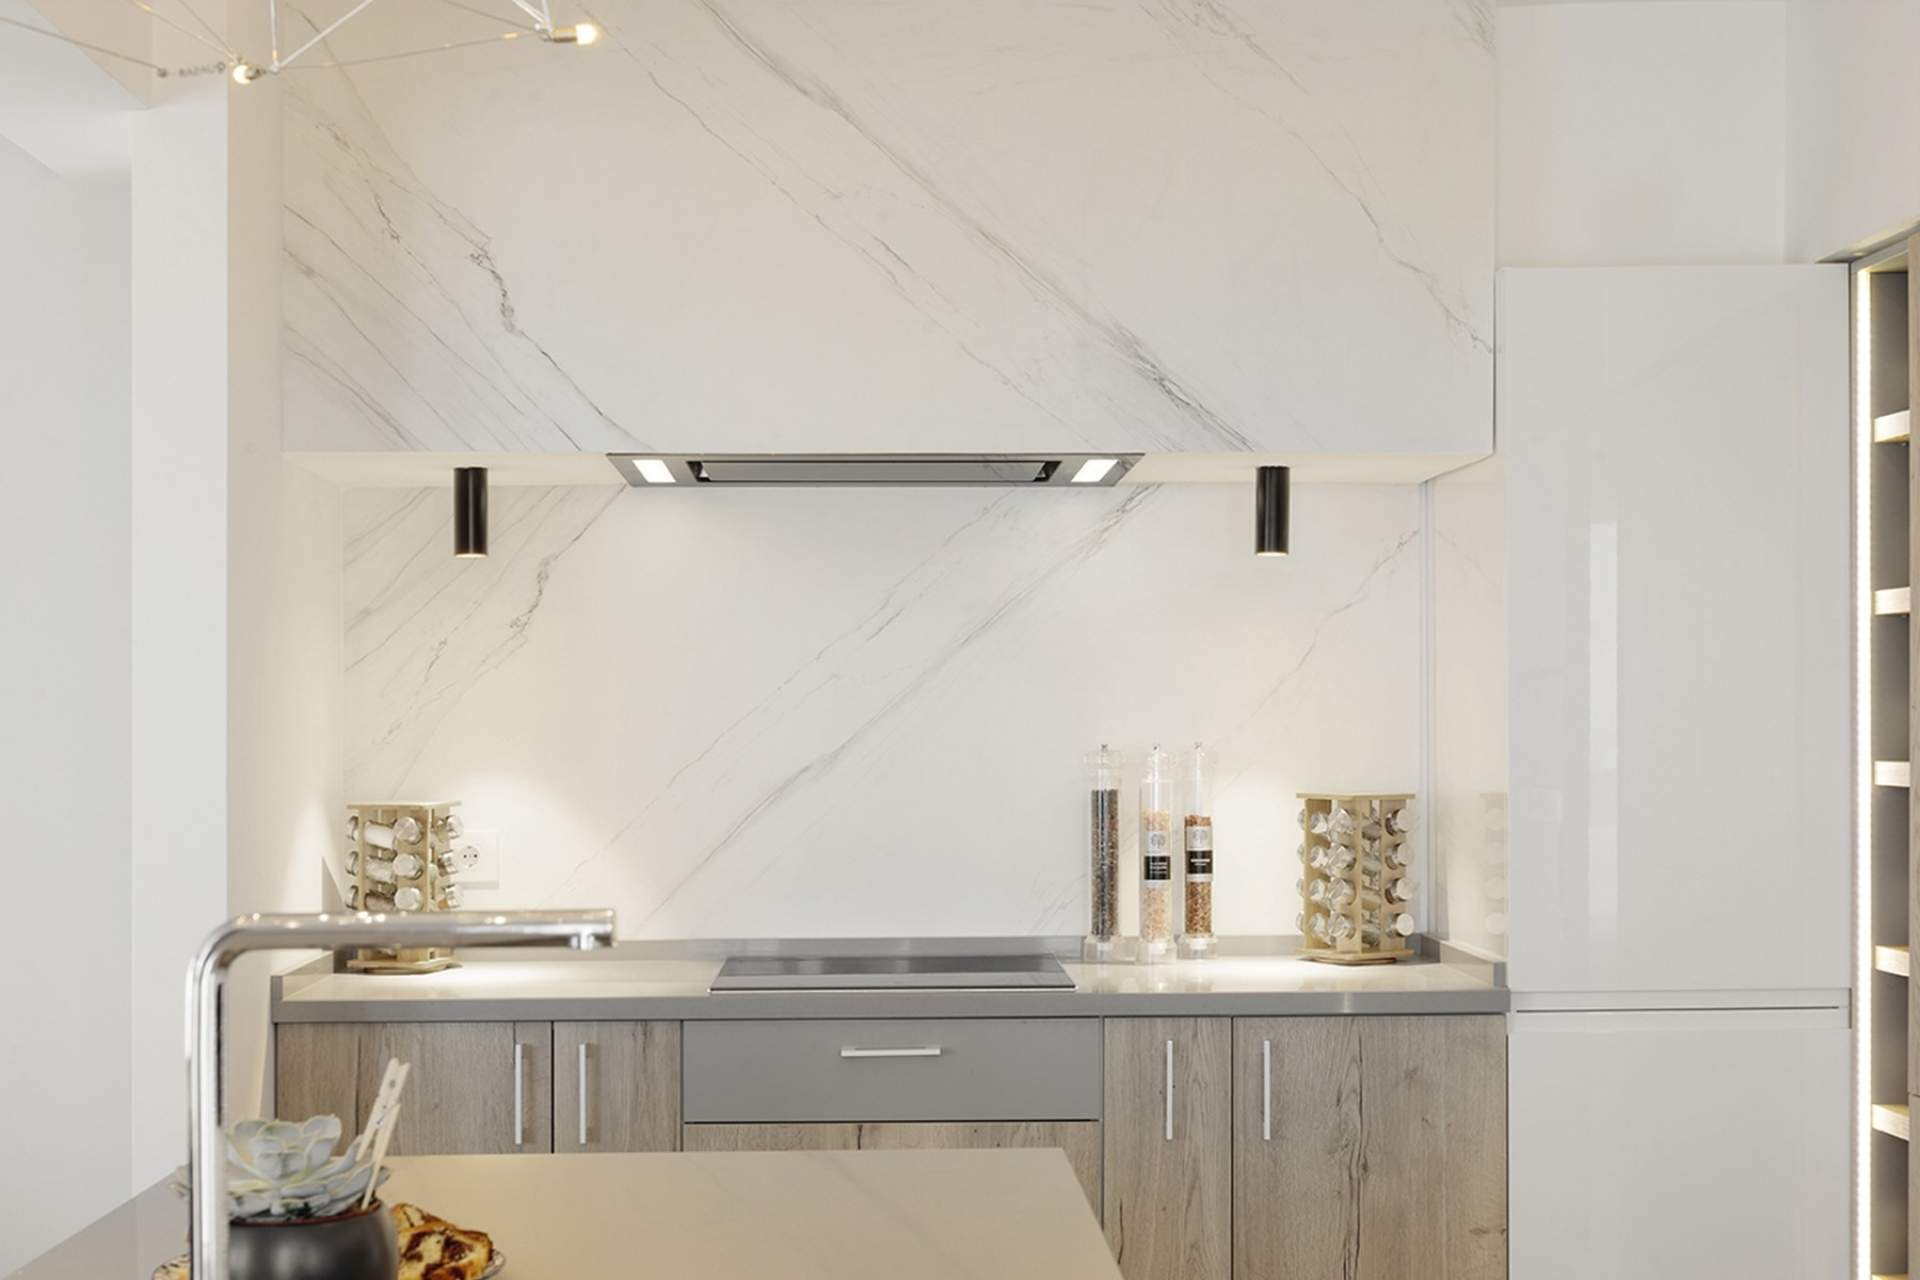 Feel kitchen wall setting using white grey high gloss tile